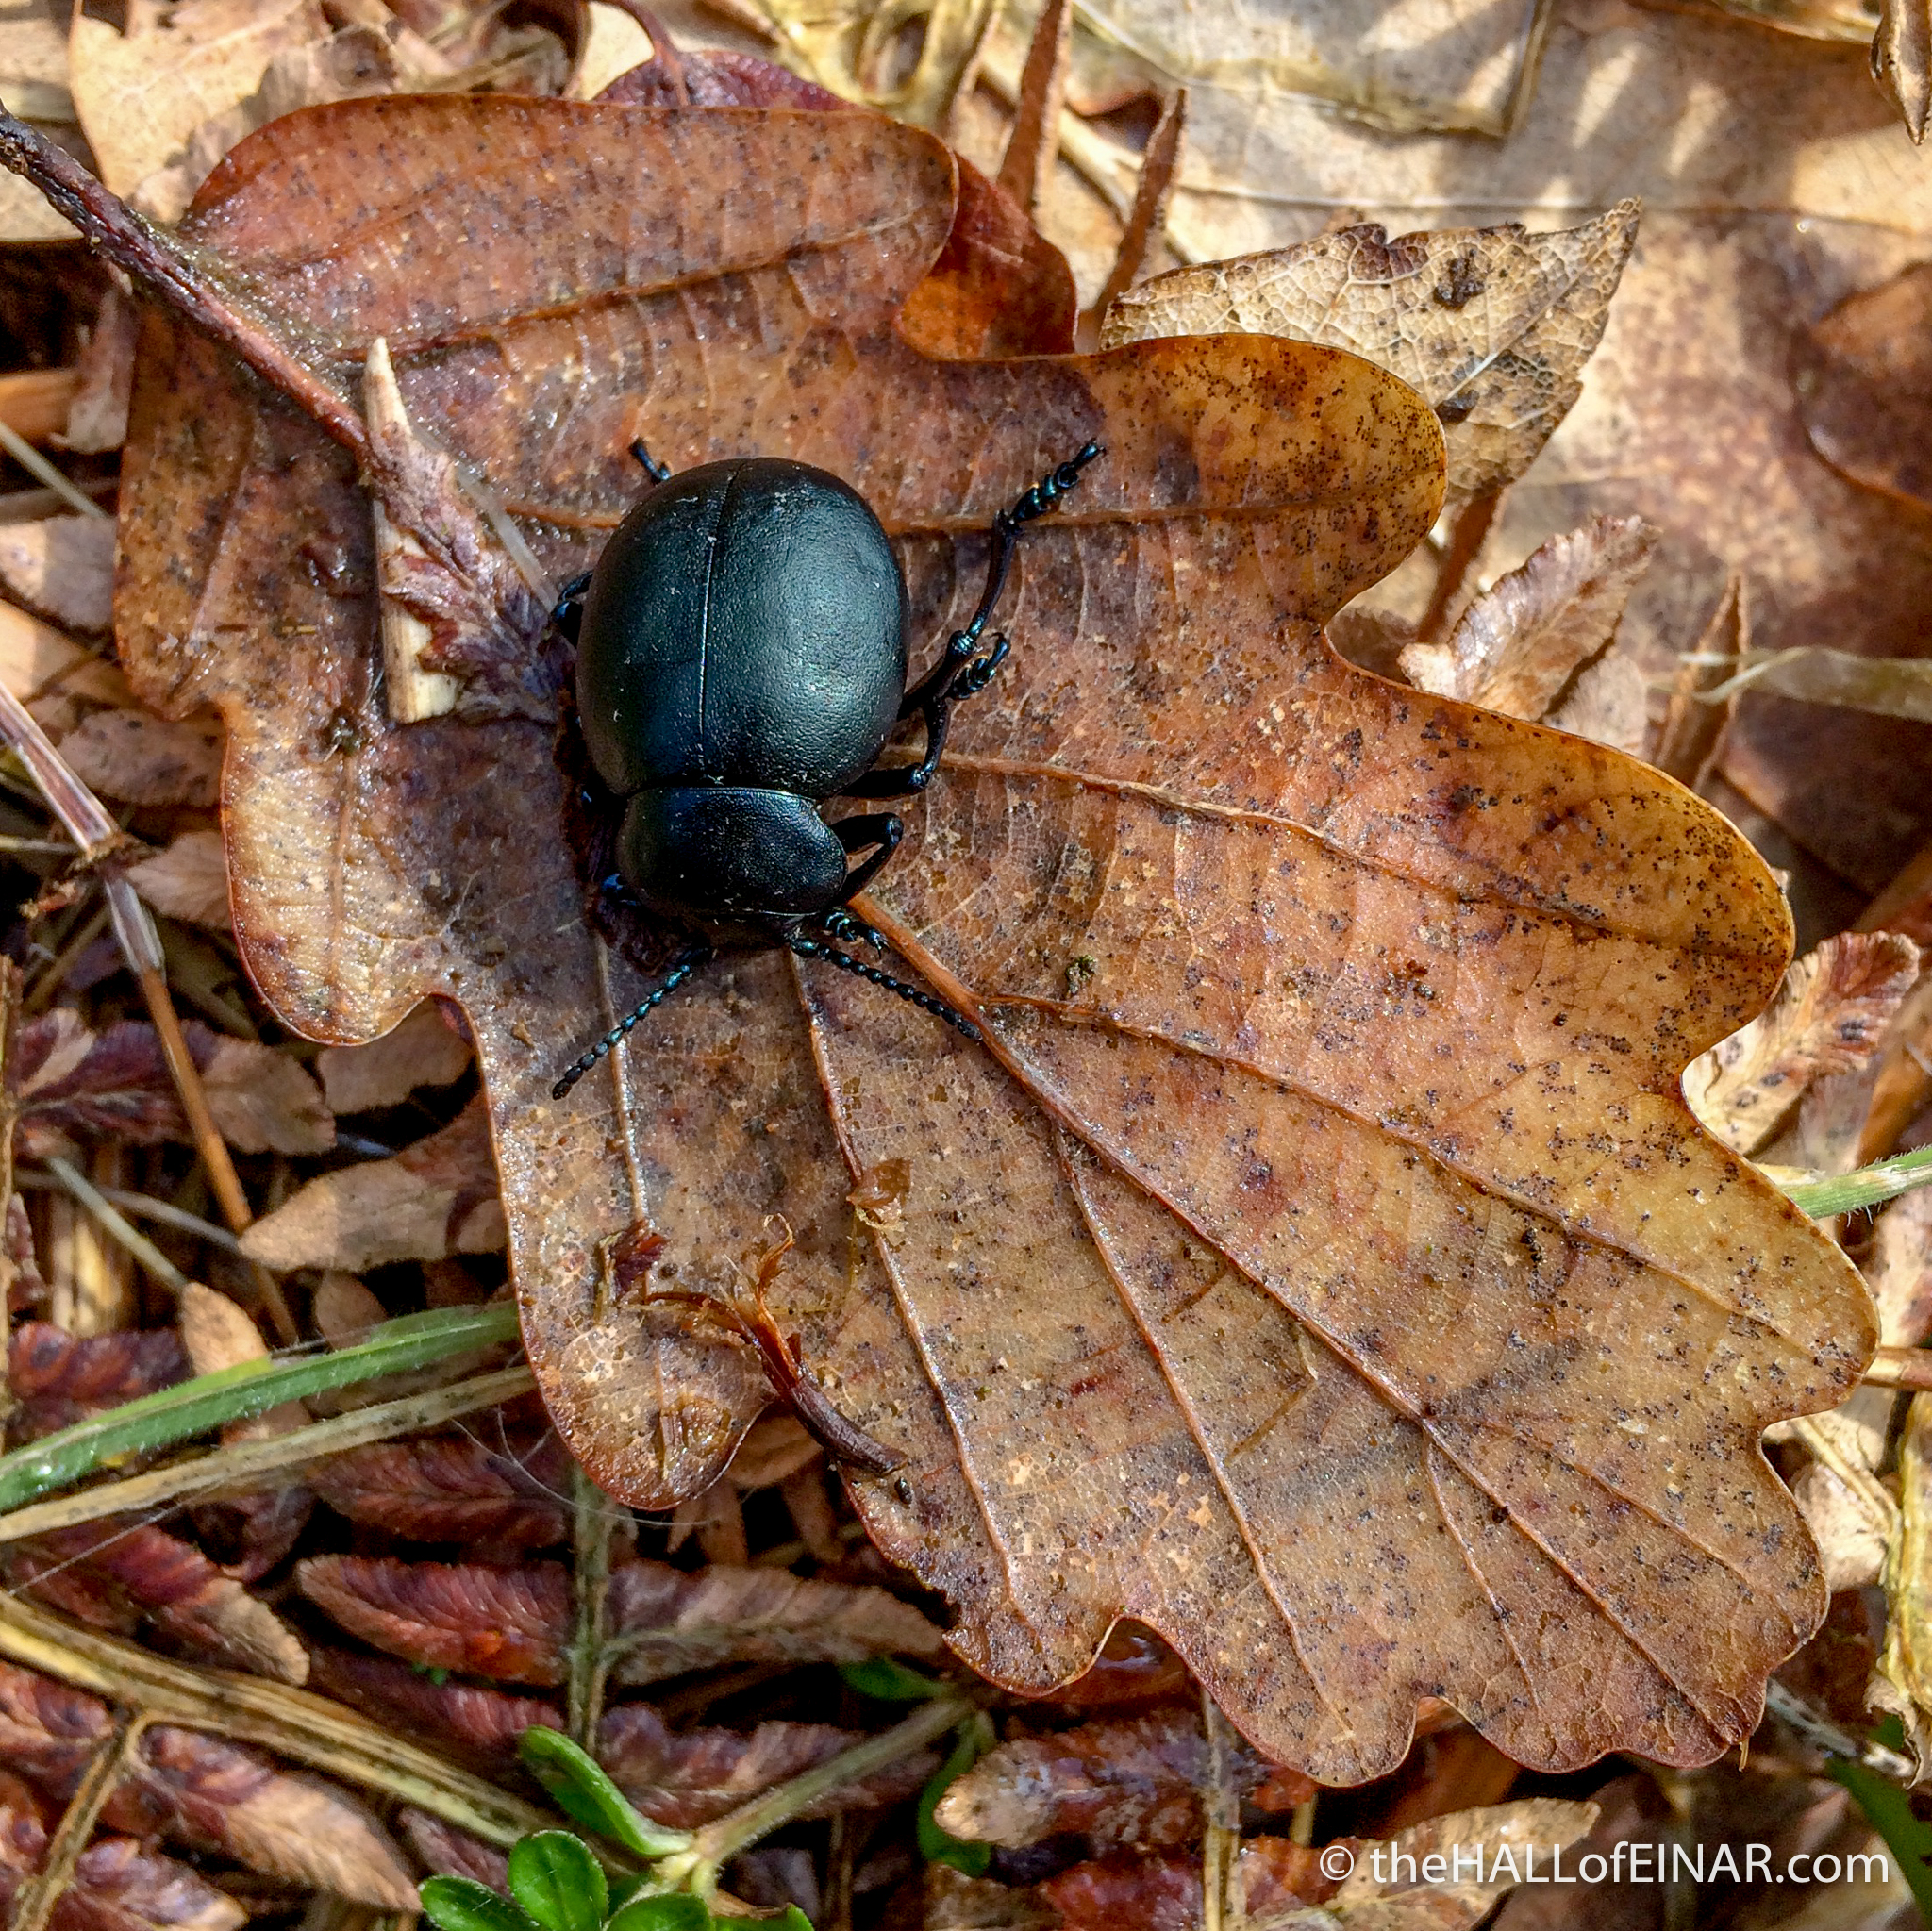 Bloody Nosed Beetle - Bridford Woods - The Hall of Einar - photograph (c) David Bailey (not the)